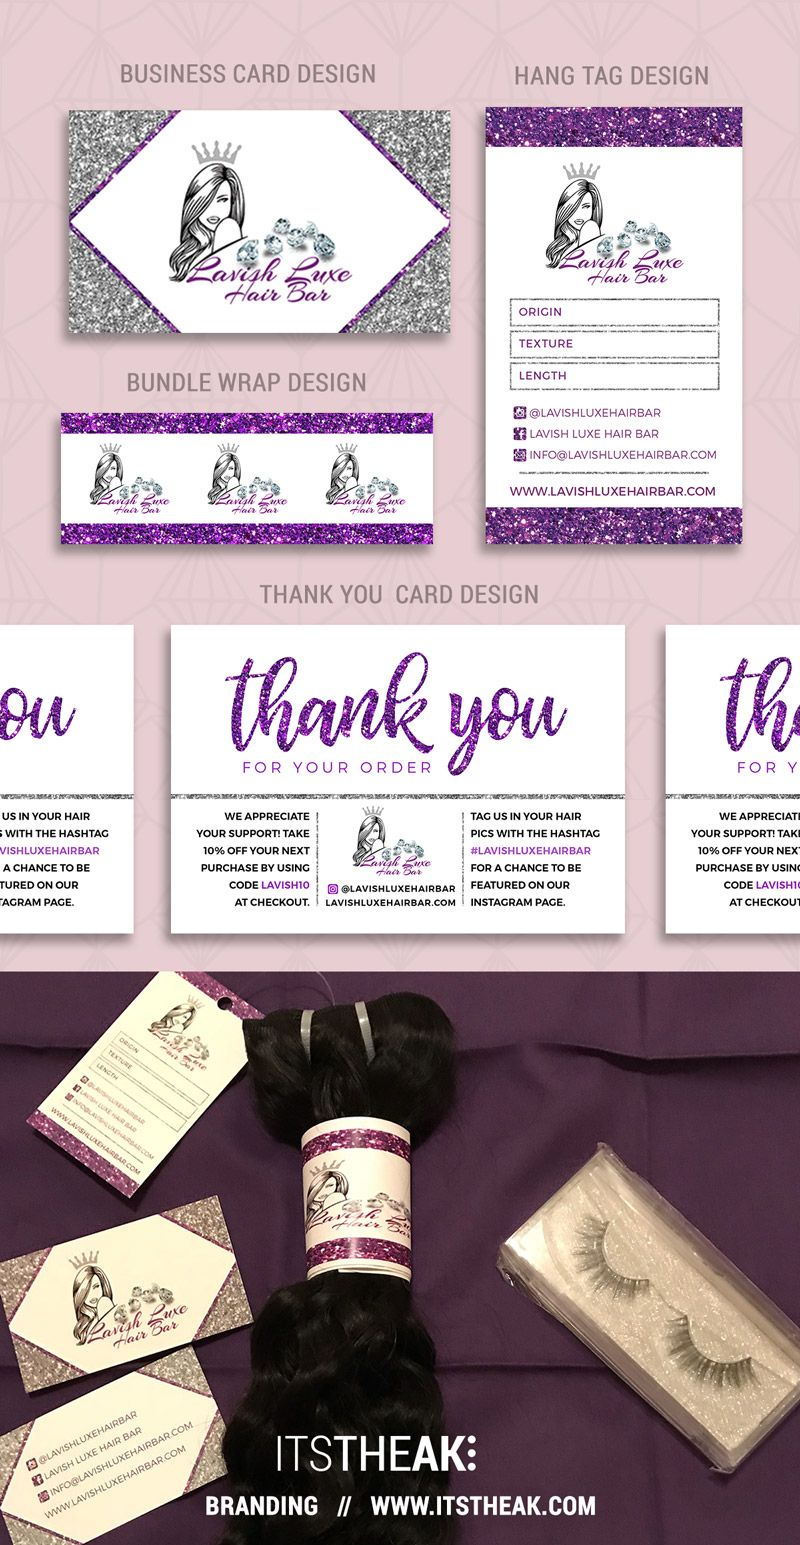 Virgin hair extensions · branding package business card design hang tag bundle wrap thank you card